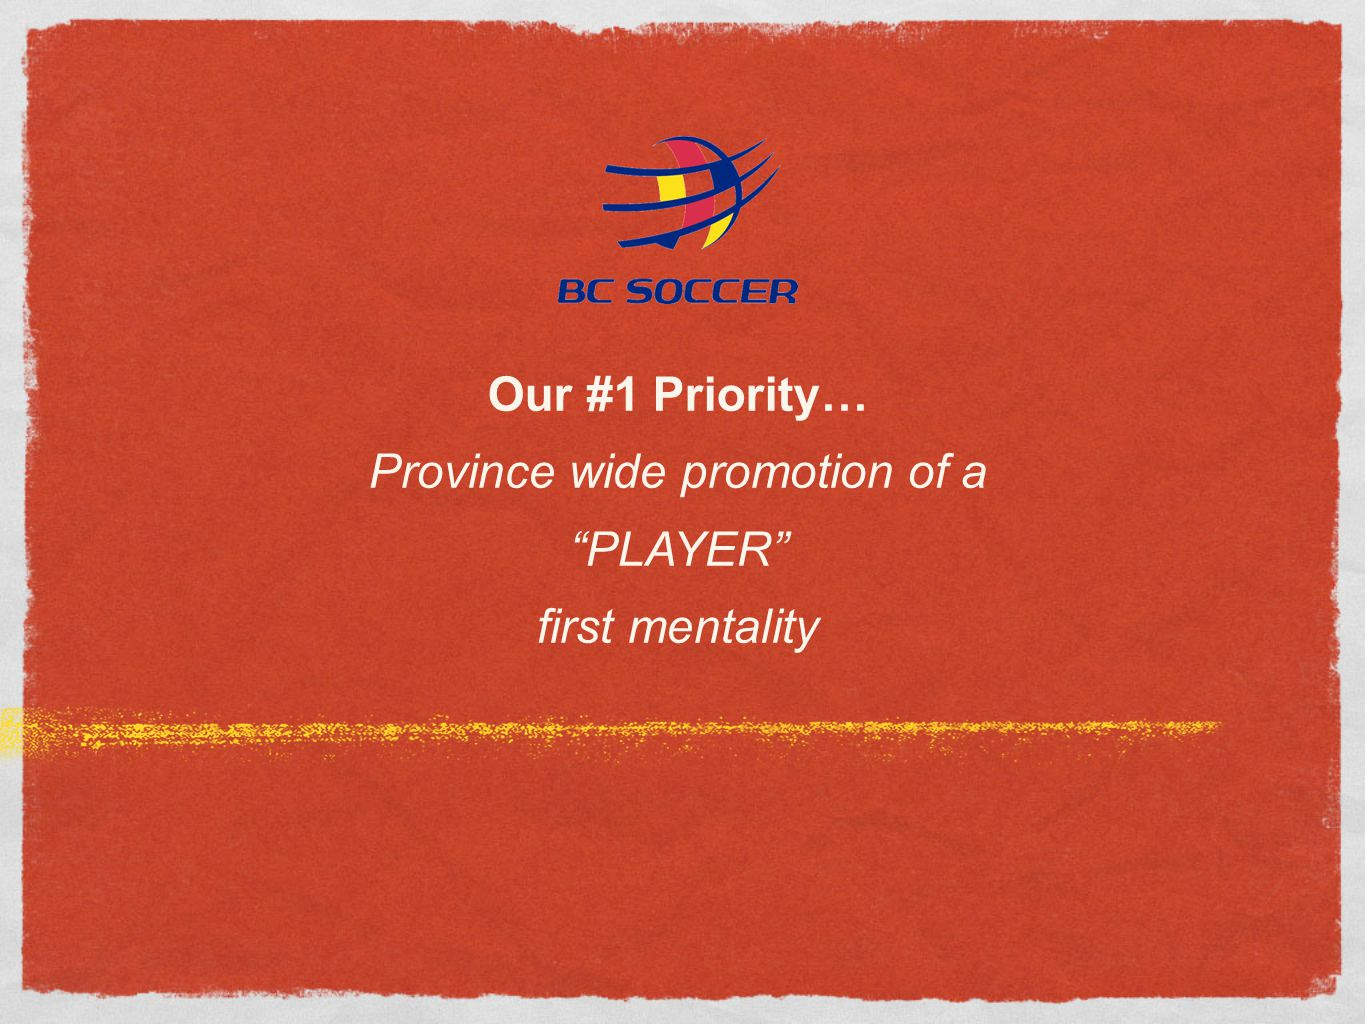 Province wide promotion of a